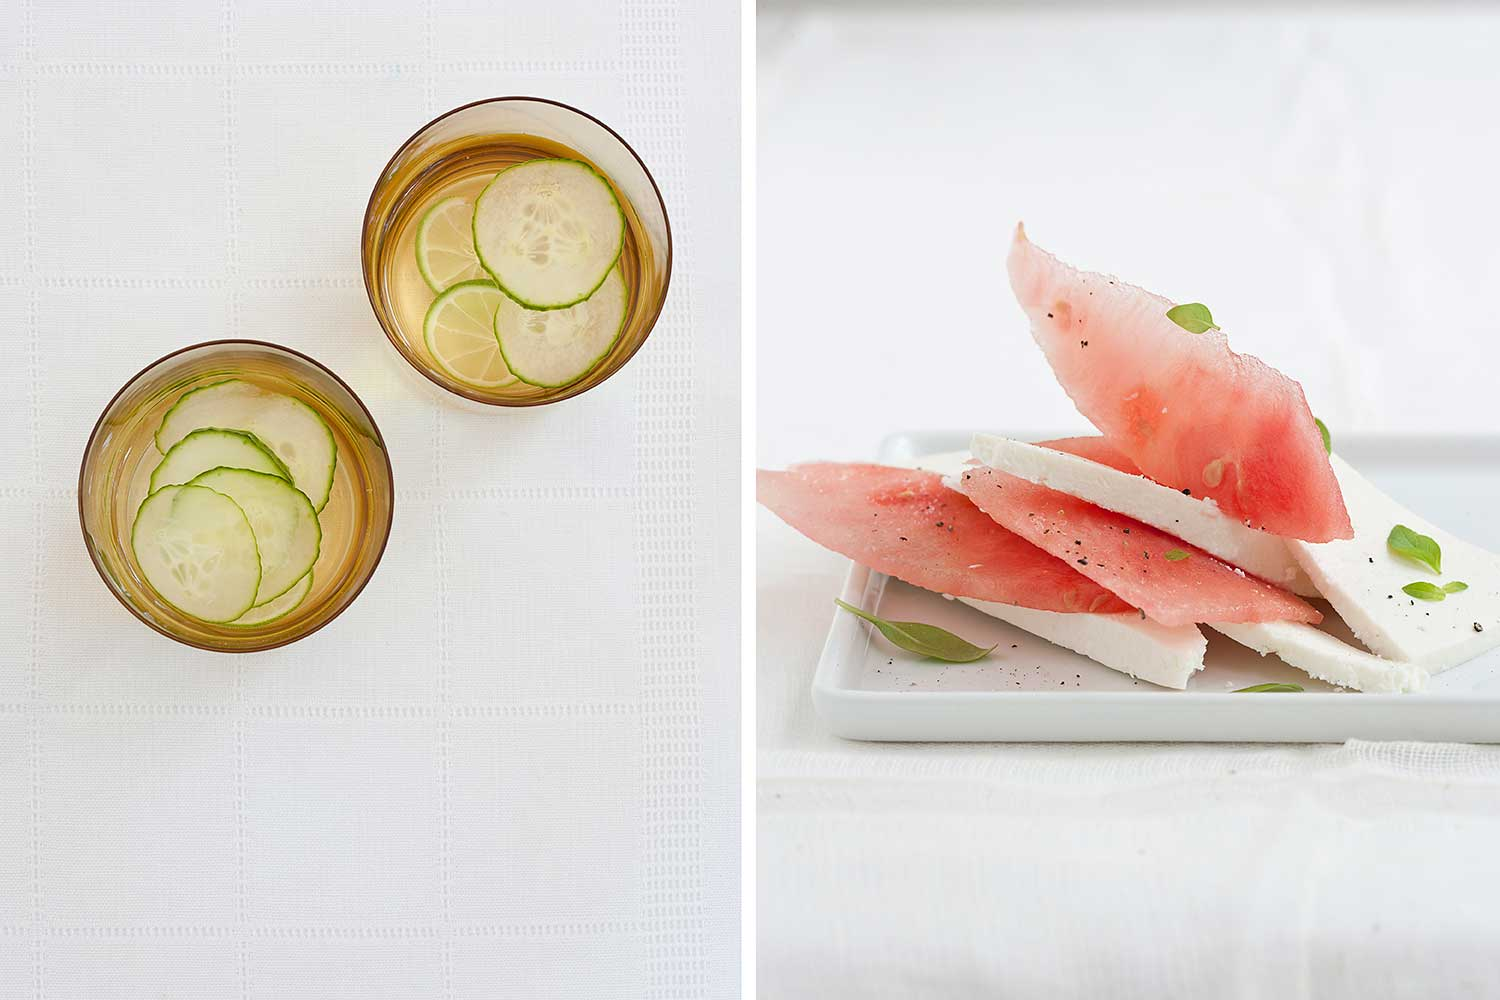 Cucumber water and watermelon slices with cheese